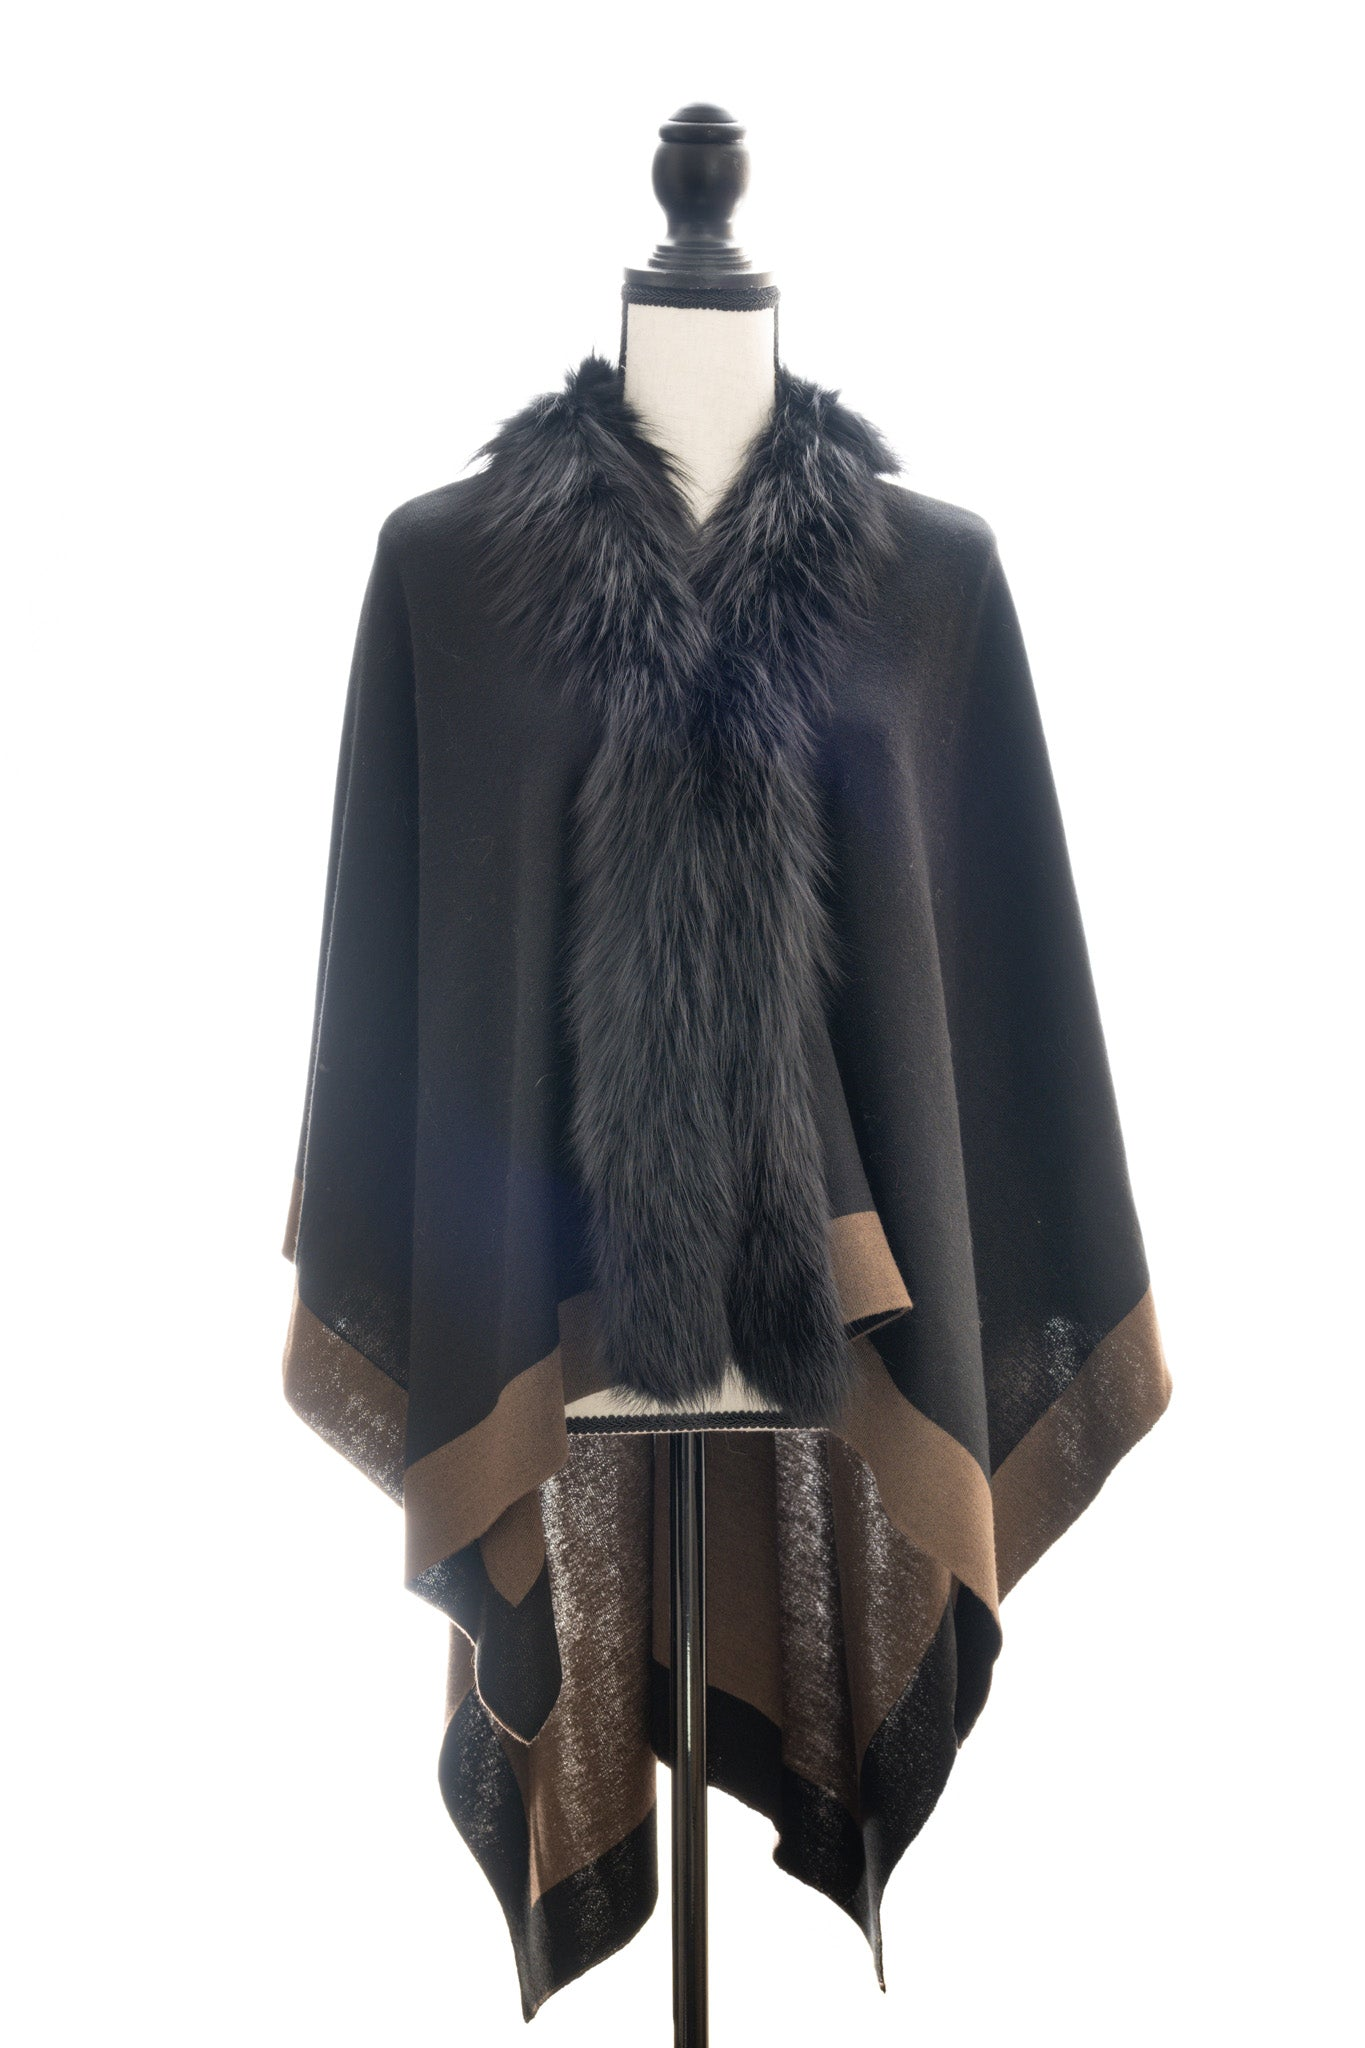 Two-Toned Reversible Wrap Trimmed with Silver Fox, Black/Brown